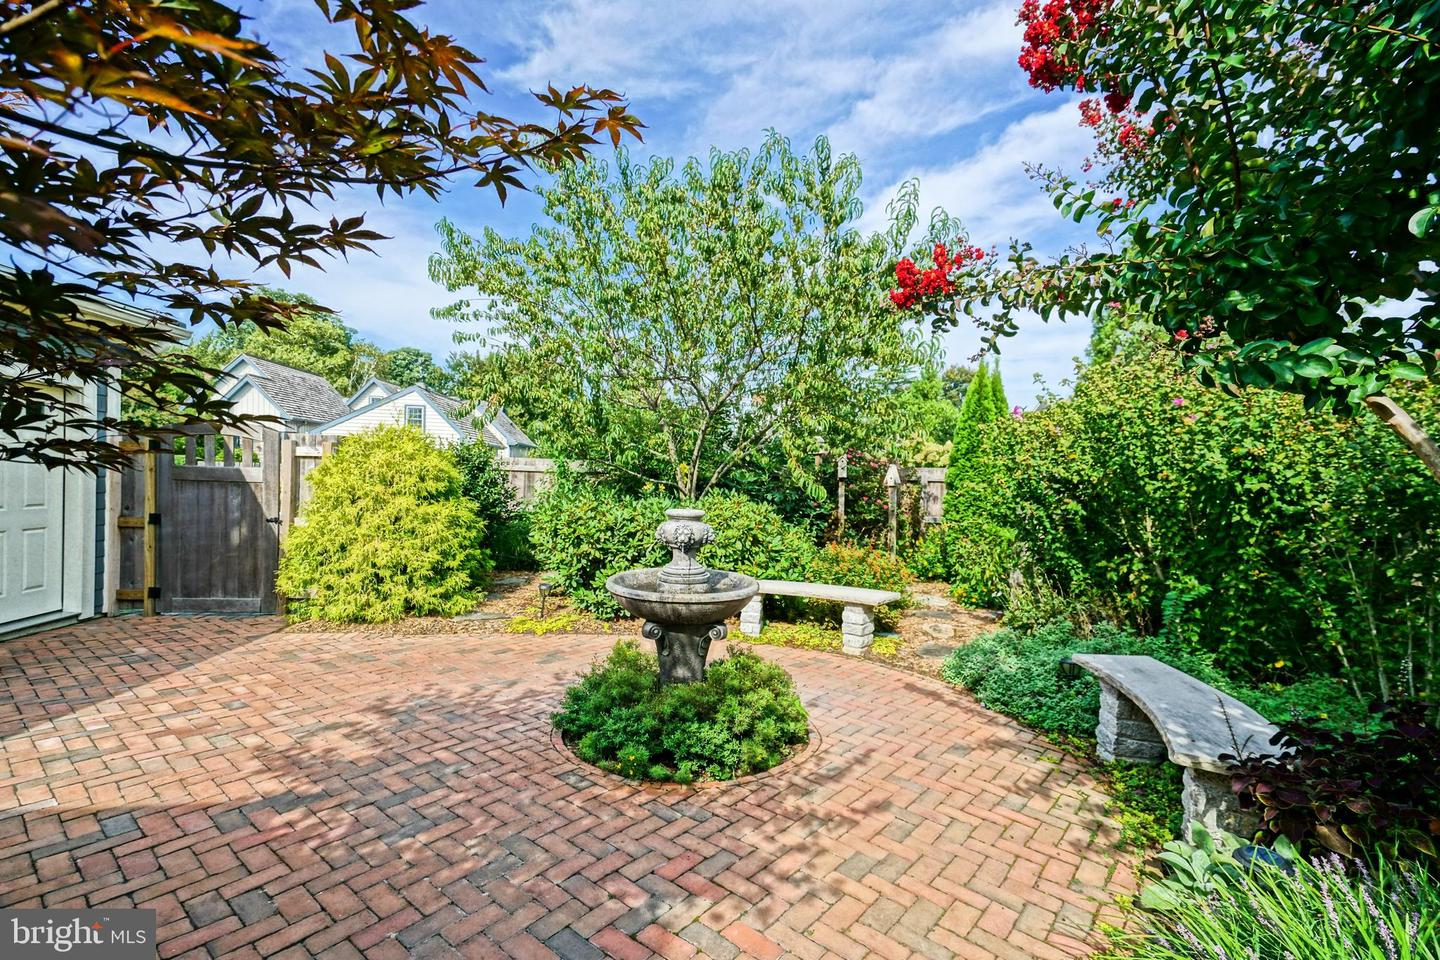 DESU147556-302019822513-2019-11-23-15-34-57 36 Shipcarpenter Sq | Lewes, DE Real Estate For Sale | MLS# Desu147556  - Lee Ann Group